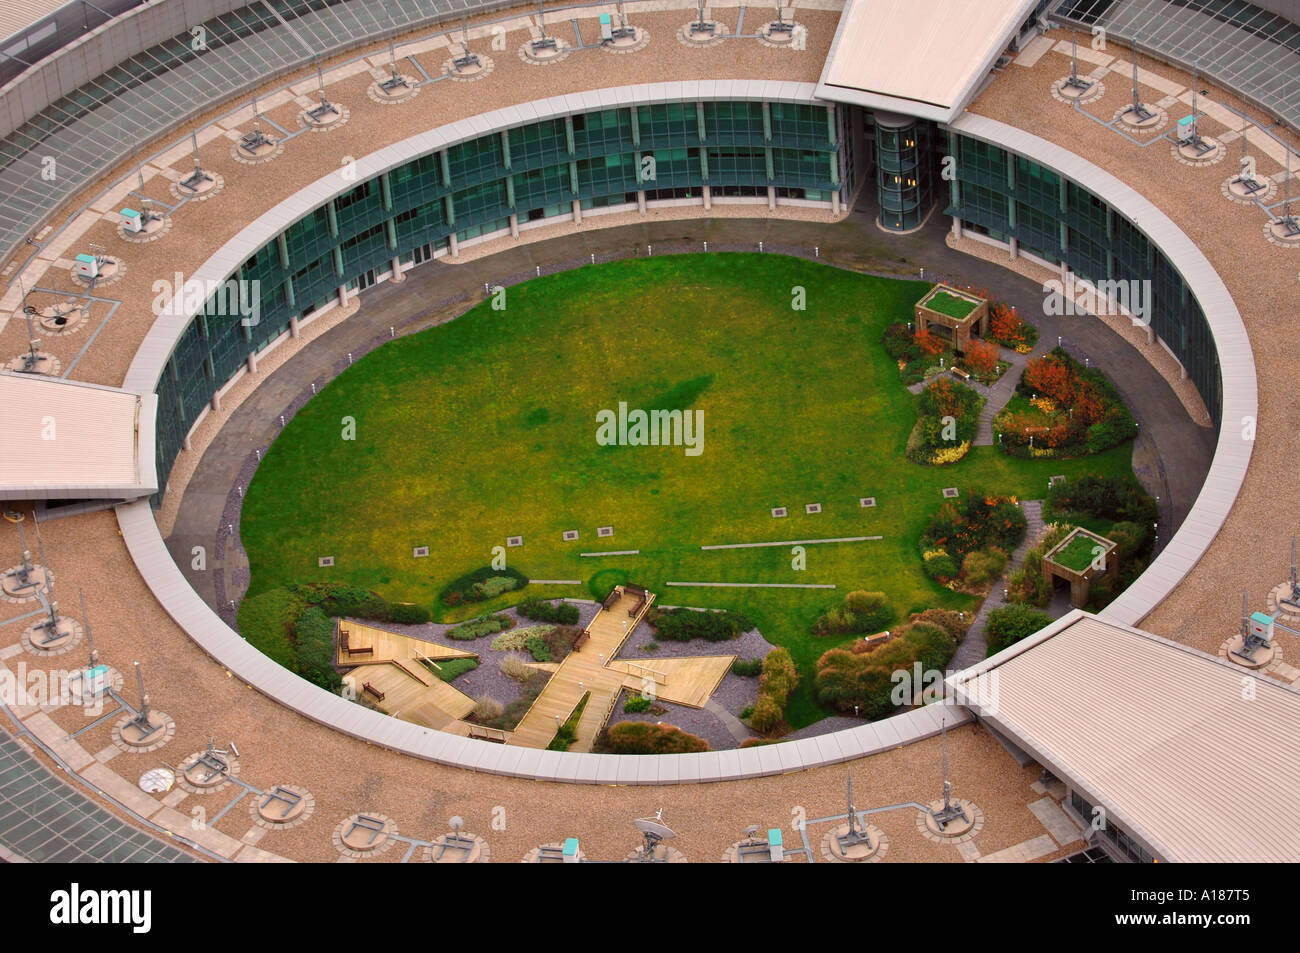 THE GOVERNMENT COMMUNICATIONS HEADQUARTERS GCHQ IN CHELTENHAM  GLOUCESTERSHIRE UK - Stock Image 489e7b1a46